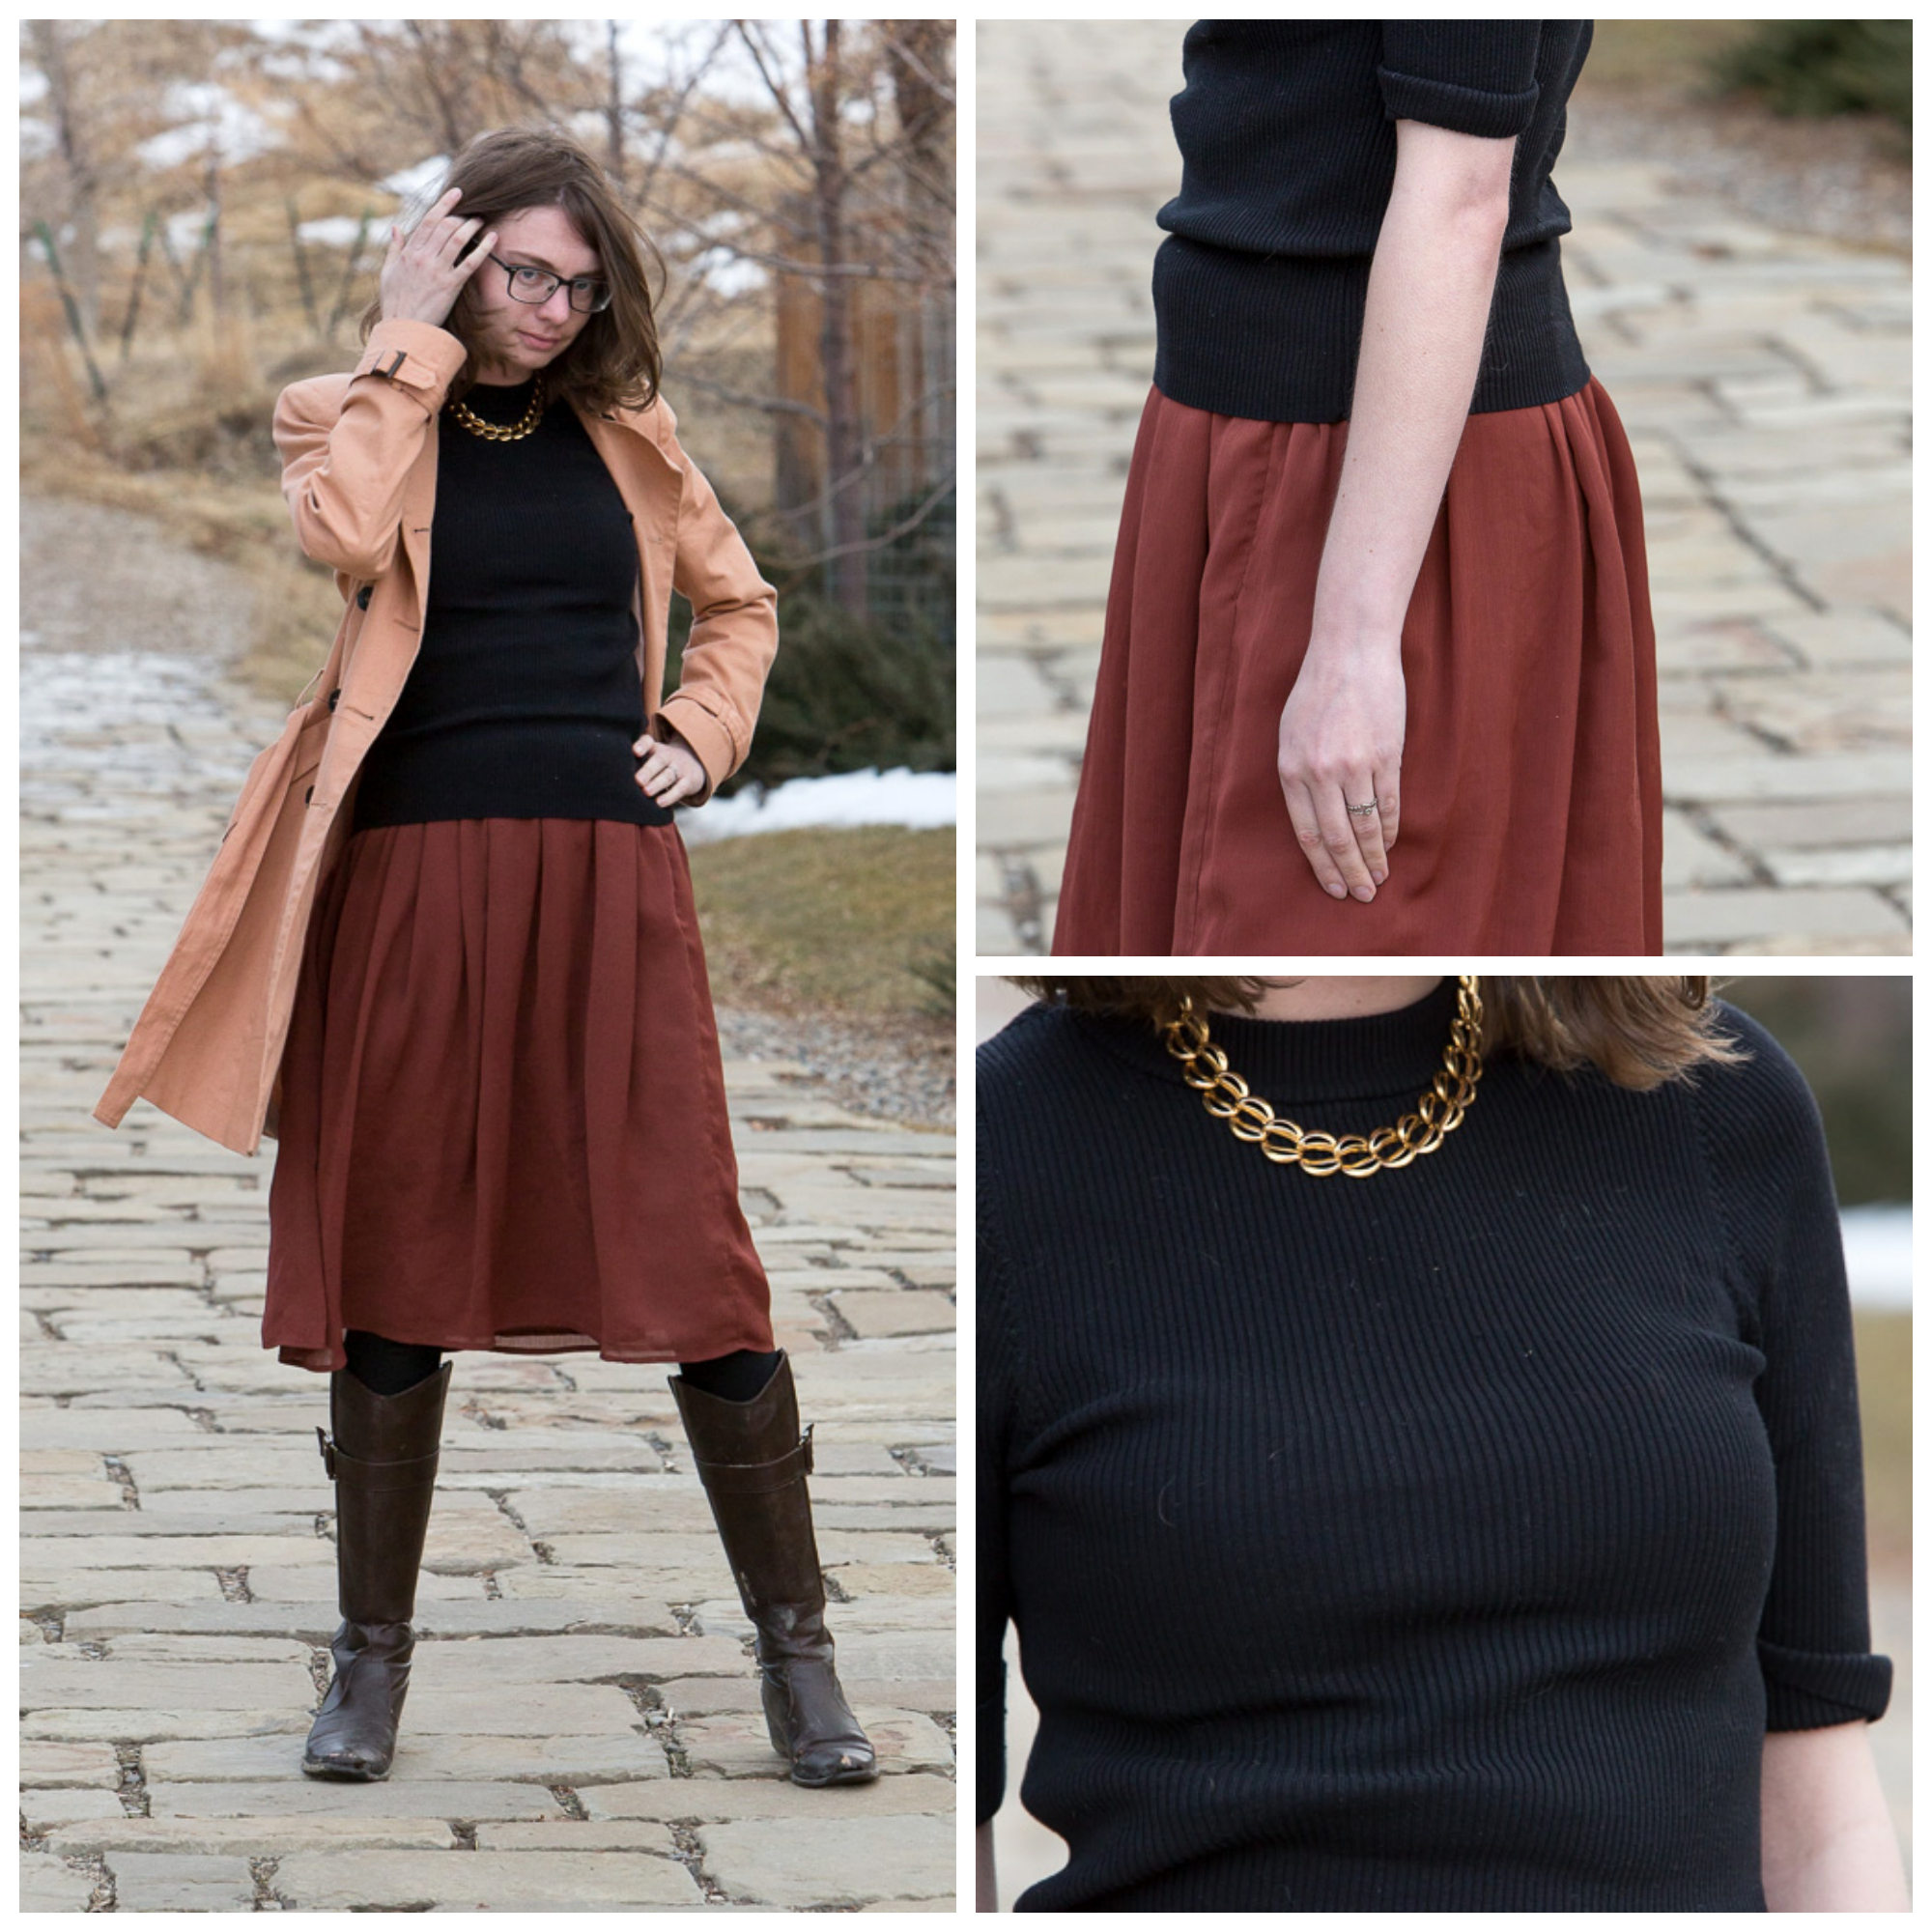 trench coat, brown, black, outfit, skirt, sweater, Never fully dressed, withoutastyle, wyoming,